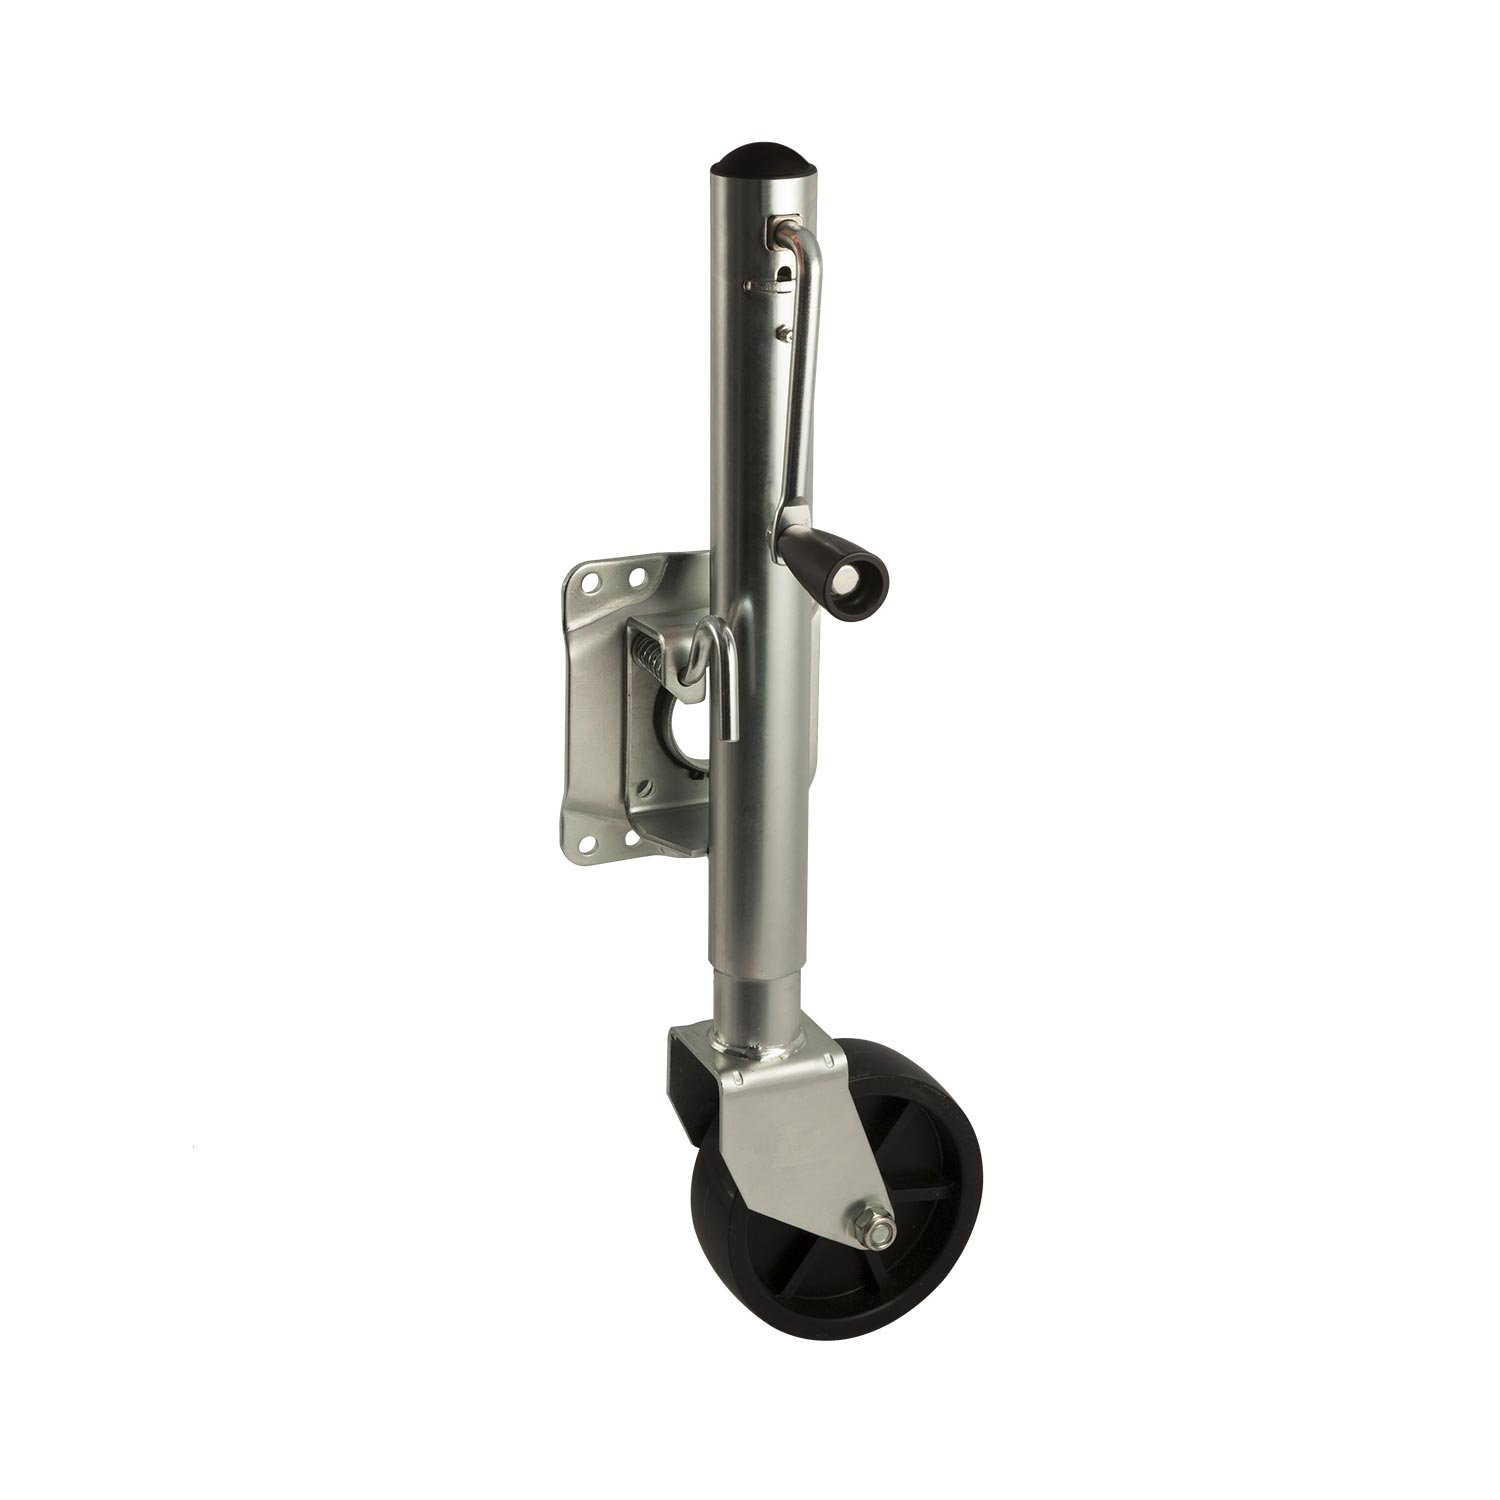 Koch Industries 4250220 Trailer Marine Tailer Jack, Bolt-On Swivel 1,000-pound Lift Capacity, Sidewind, 10 Travel, Mounting Hardware Included, 6-inch Wheel